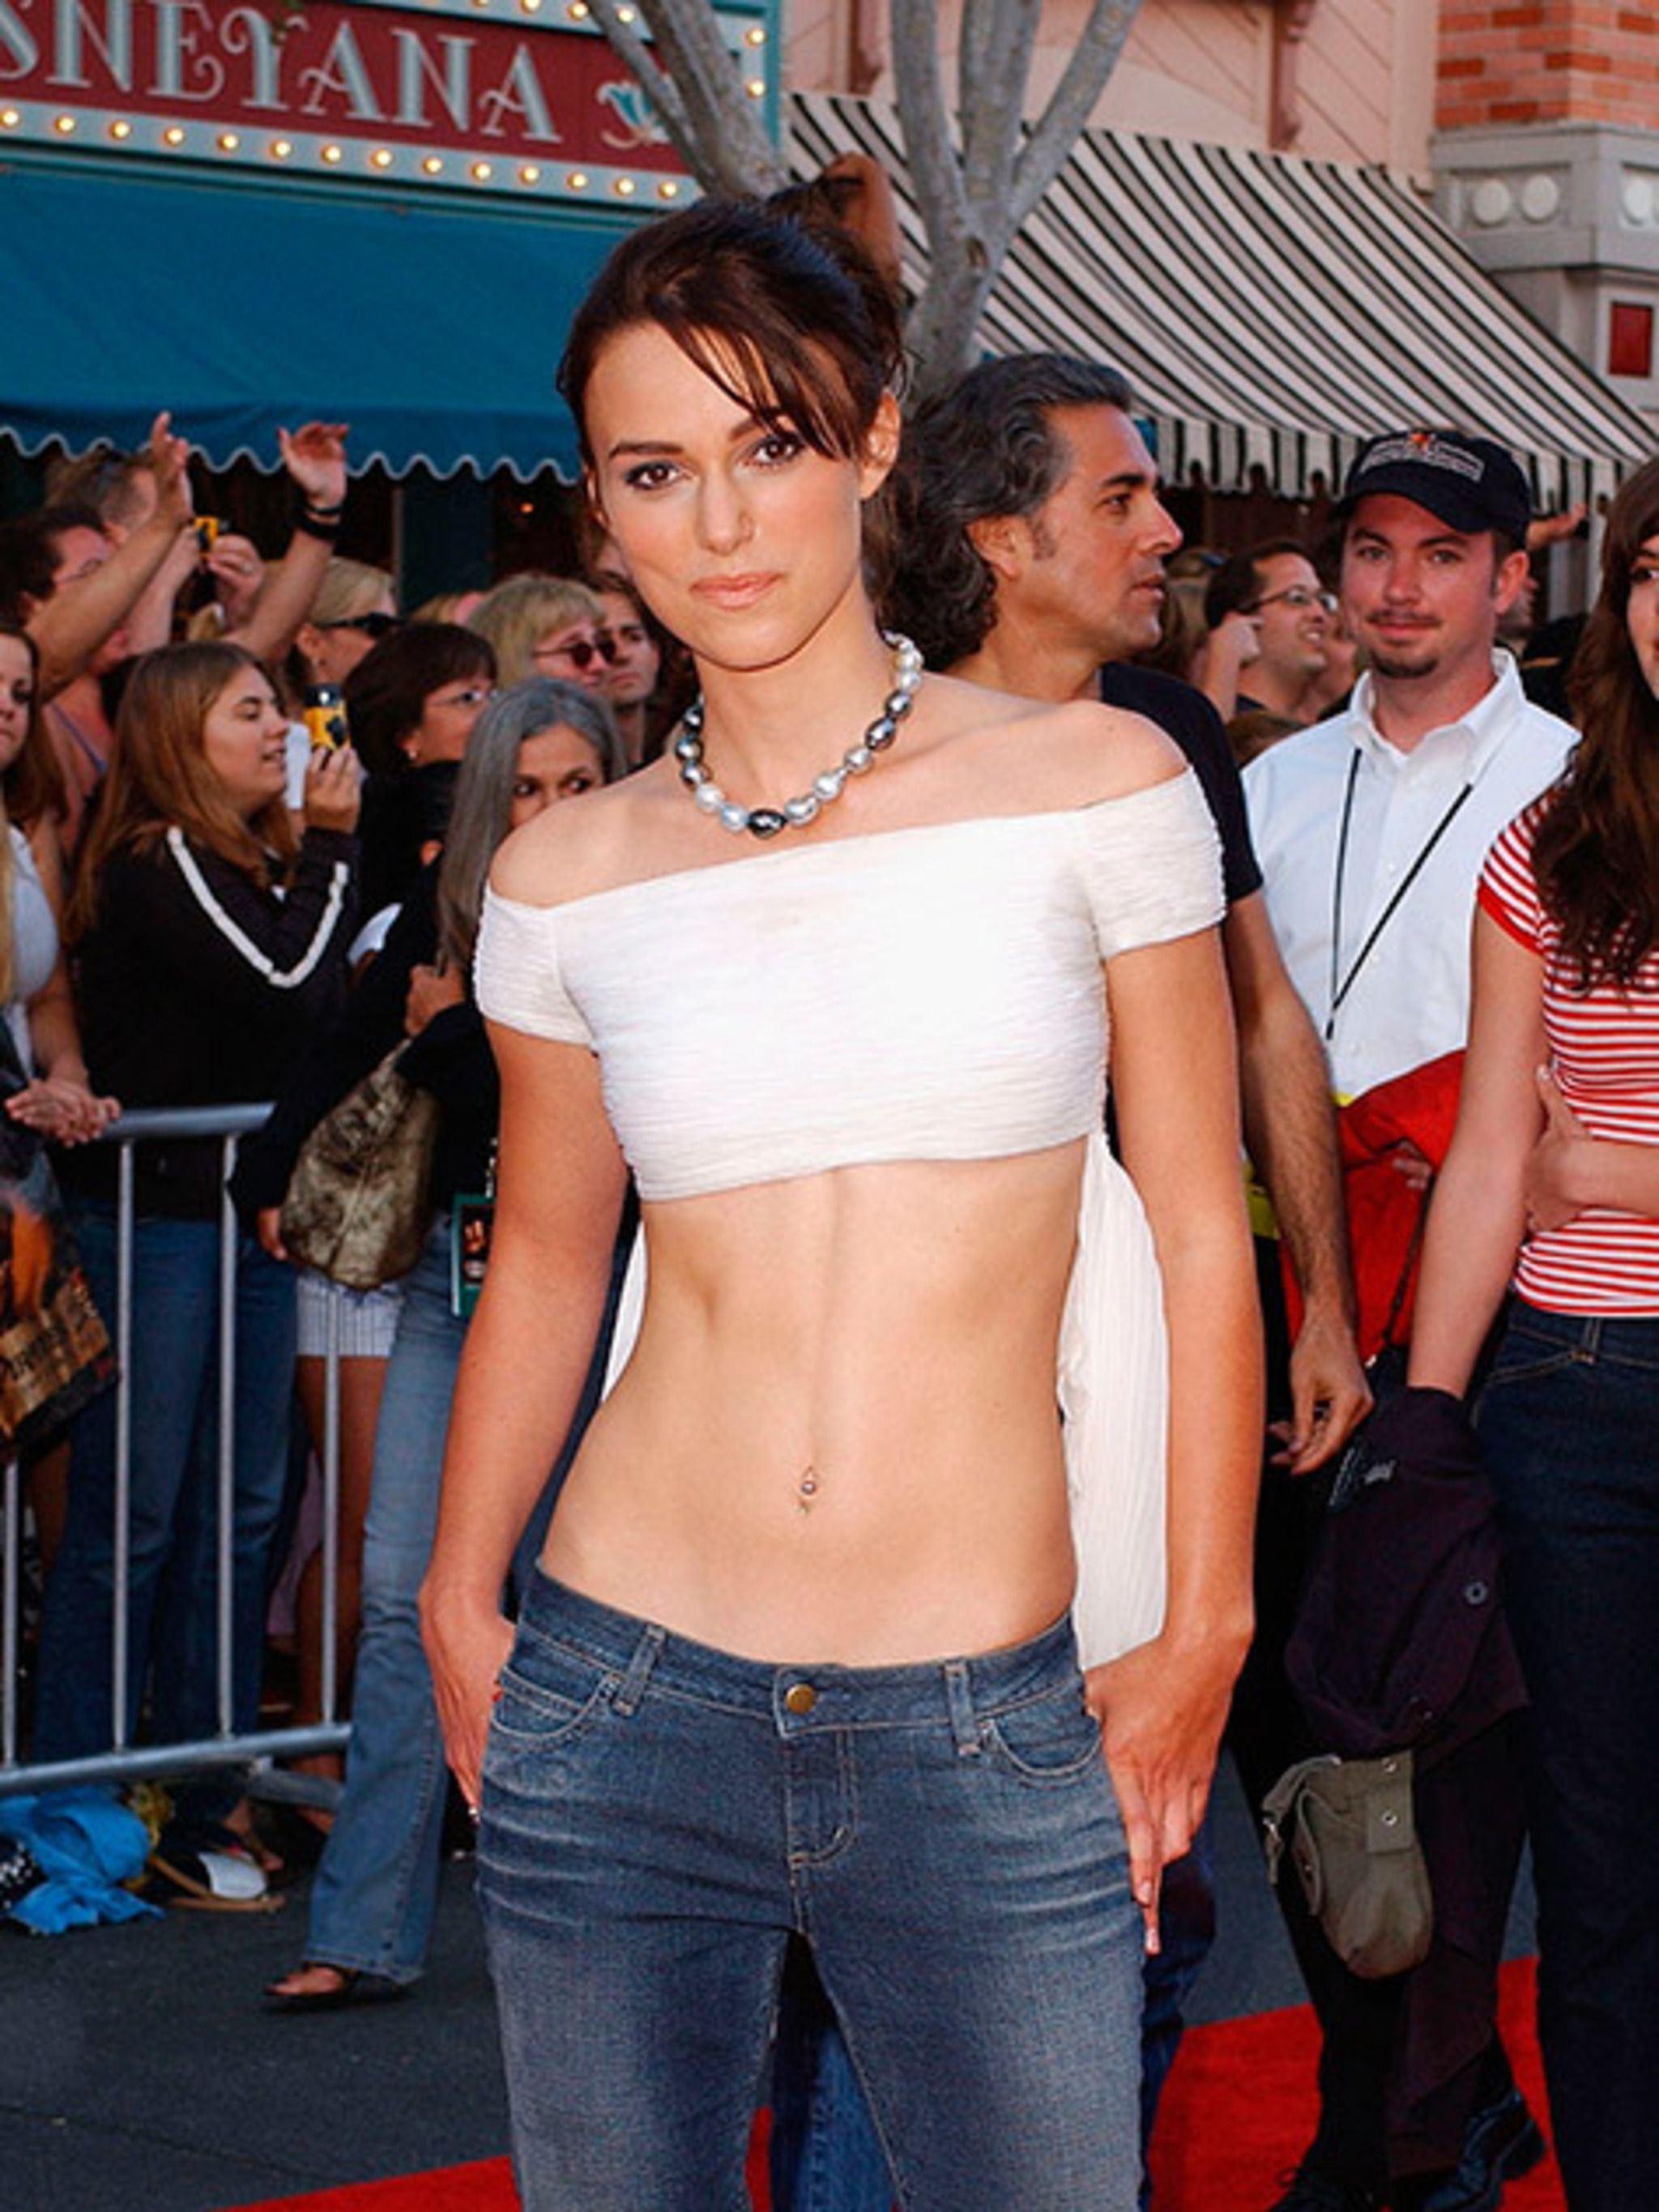 <p>Keira Knightley at the world premiere of <em>Pirates of the Caribbean - The Curse of the Black Pearl</em> in Anaheim, California, June 2003.</p>